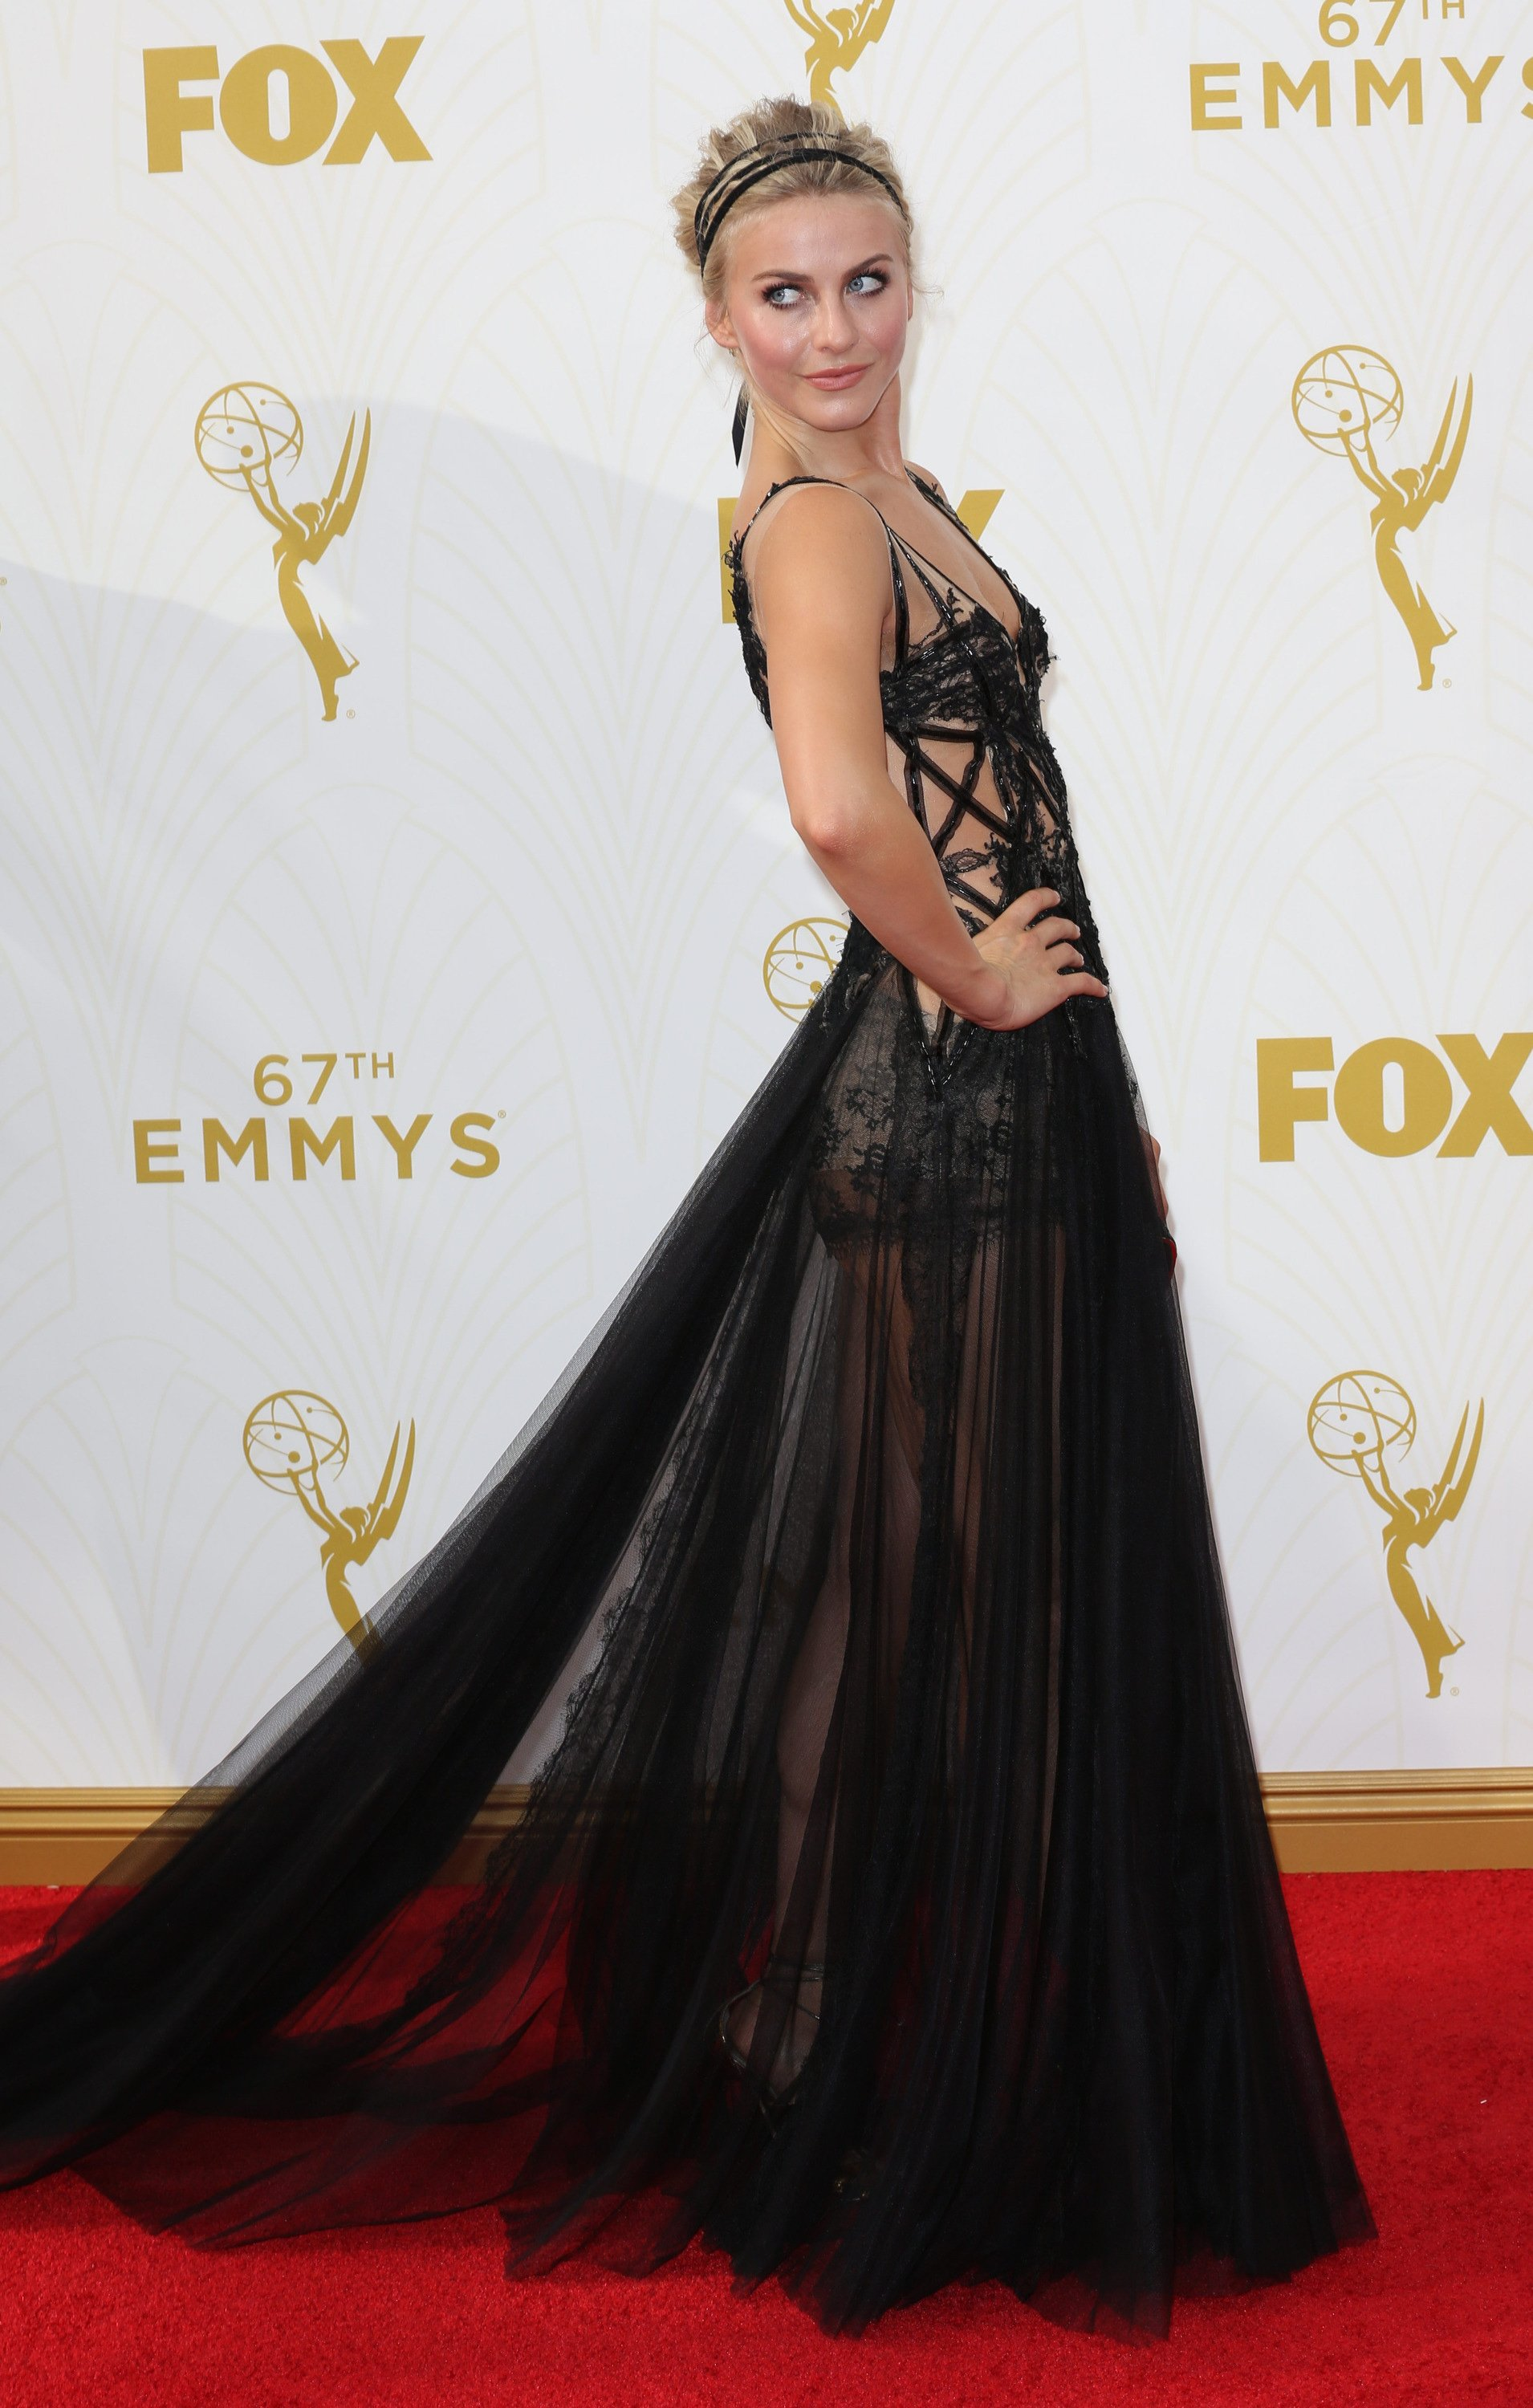 Celebrities arrive at 67th Emmys Red Carpet at Microsoft Theater.  Featuring: Julianne Hough Where: Los Angeles, California, United States When: 20 Sep 2015 Credit: Brian To/WENN.com